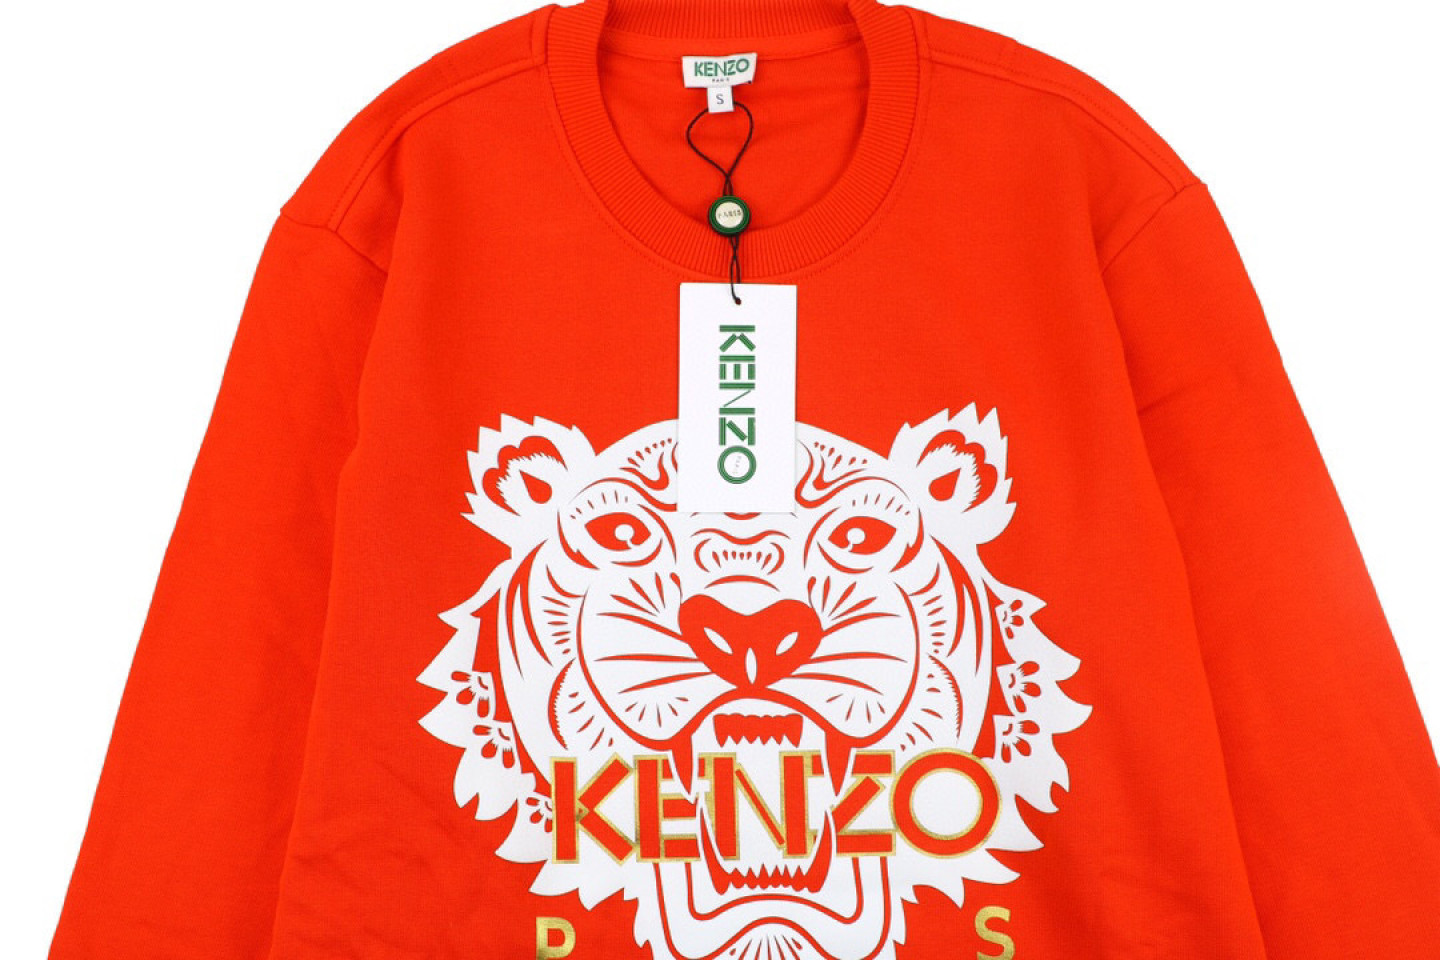 Shirt Genuine kenzo black gold and red tiger head sweater 2 genuine_kenzo_black_gold_and_red_tiger_head_sweater_2